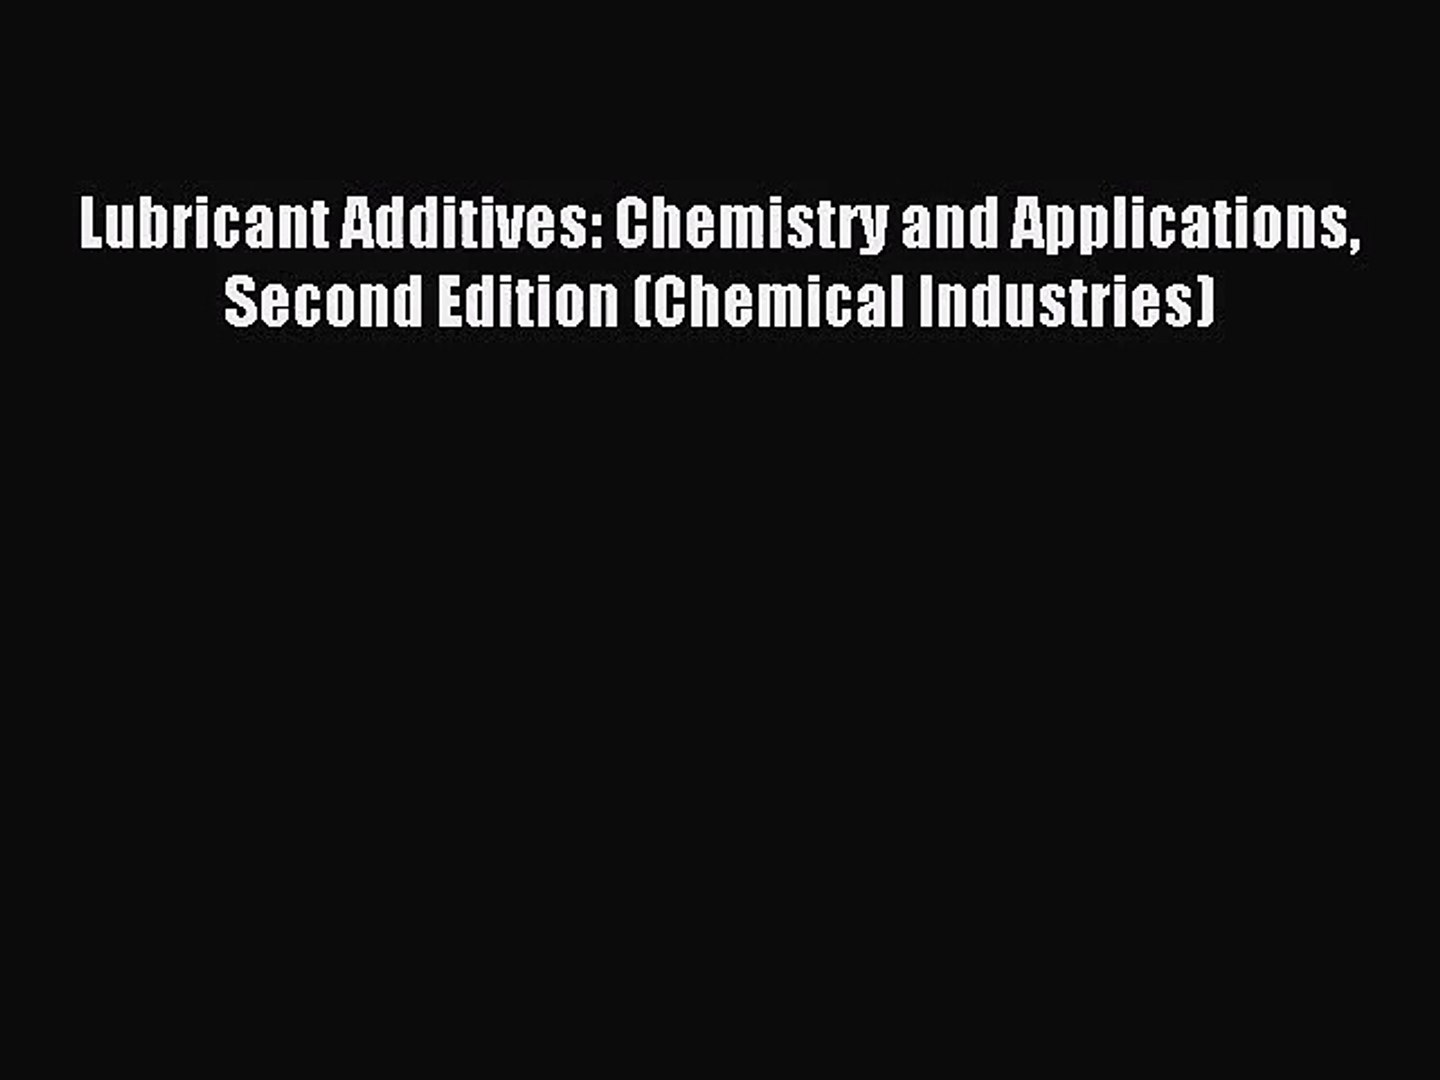 Lubricant Additives: Chemistry and Applications, Second Edition (Chemical Industries)